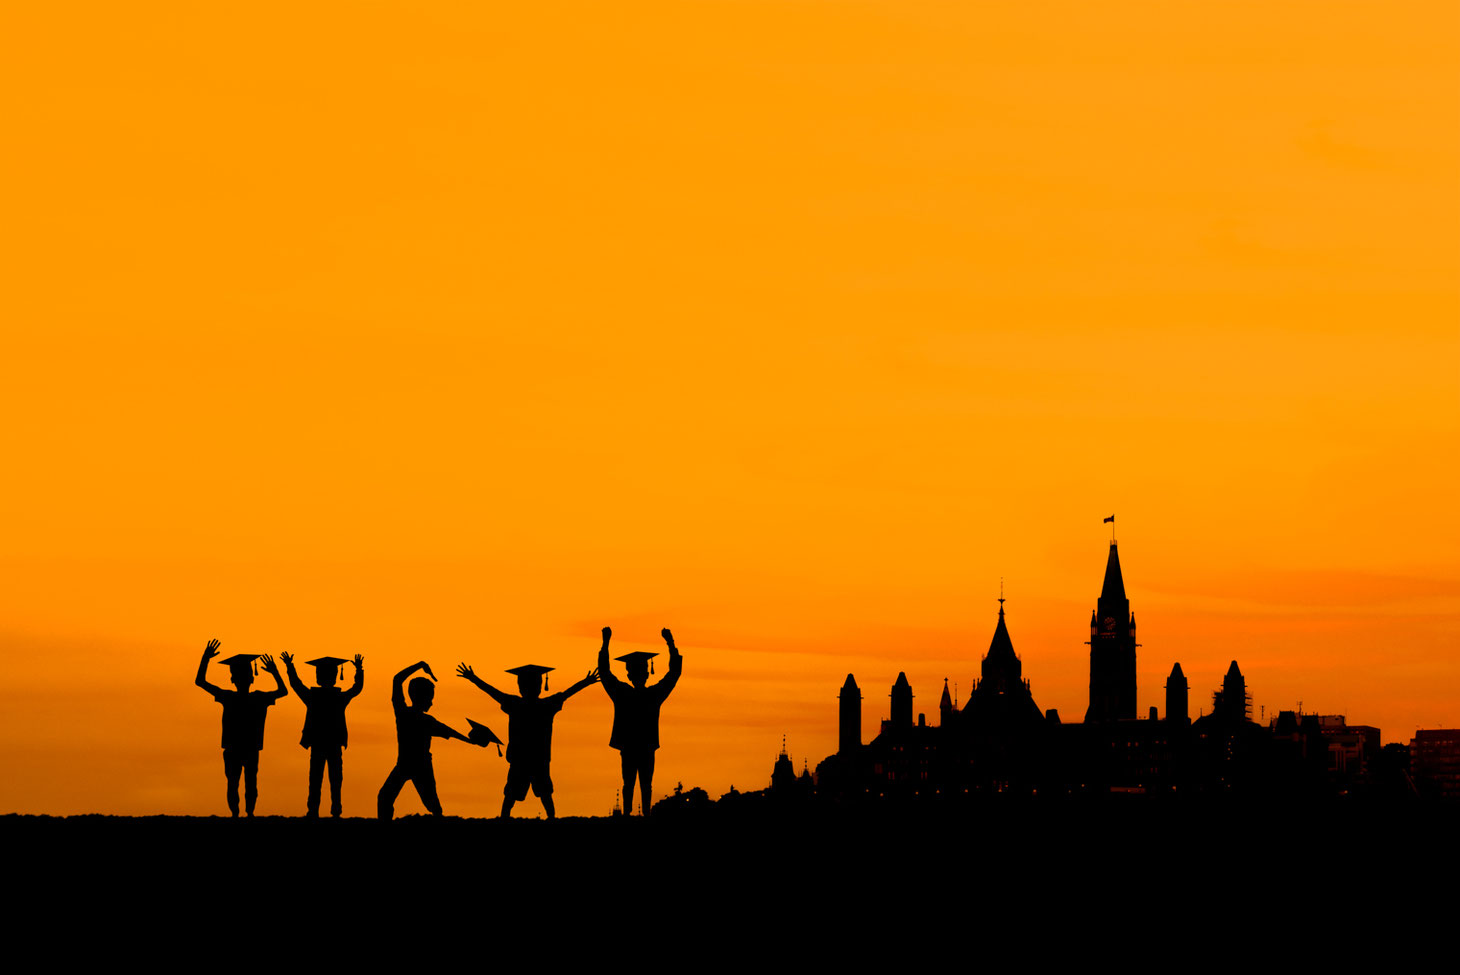 5 boys in silhouette in front of an orange sky next to a silhouette of parliament hill in Ottawa Ontario